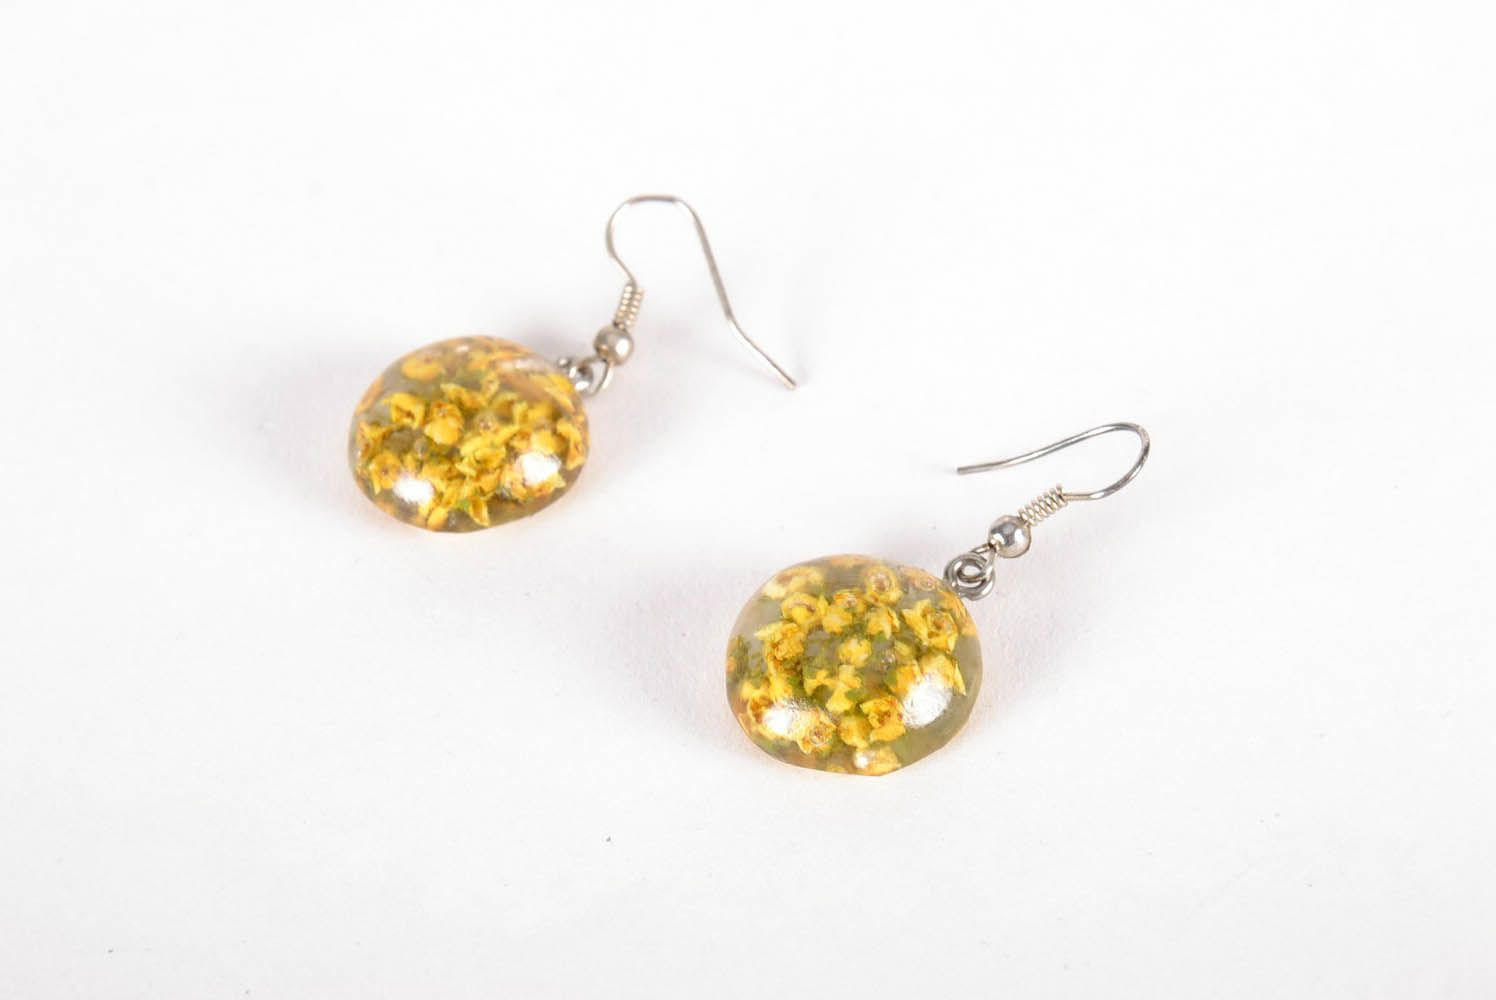 Earrings with dried flowers in epoxy resin photo 1